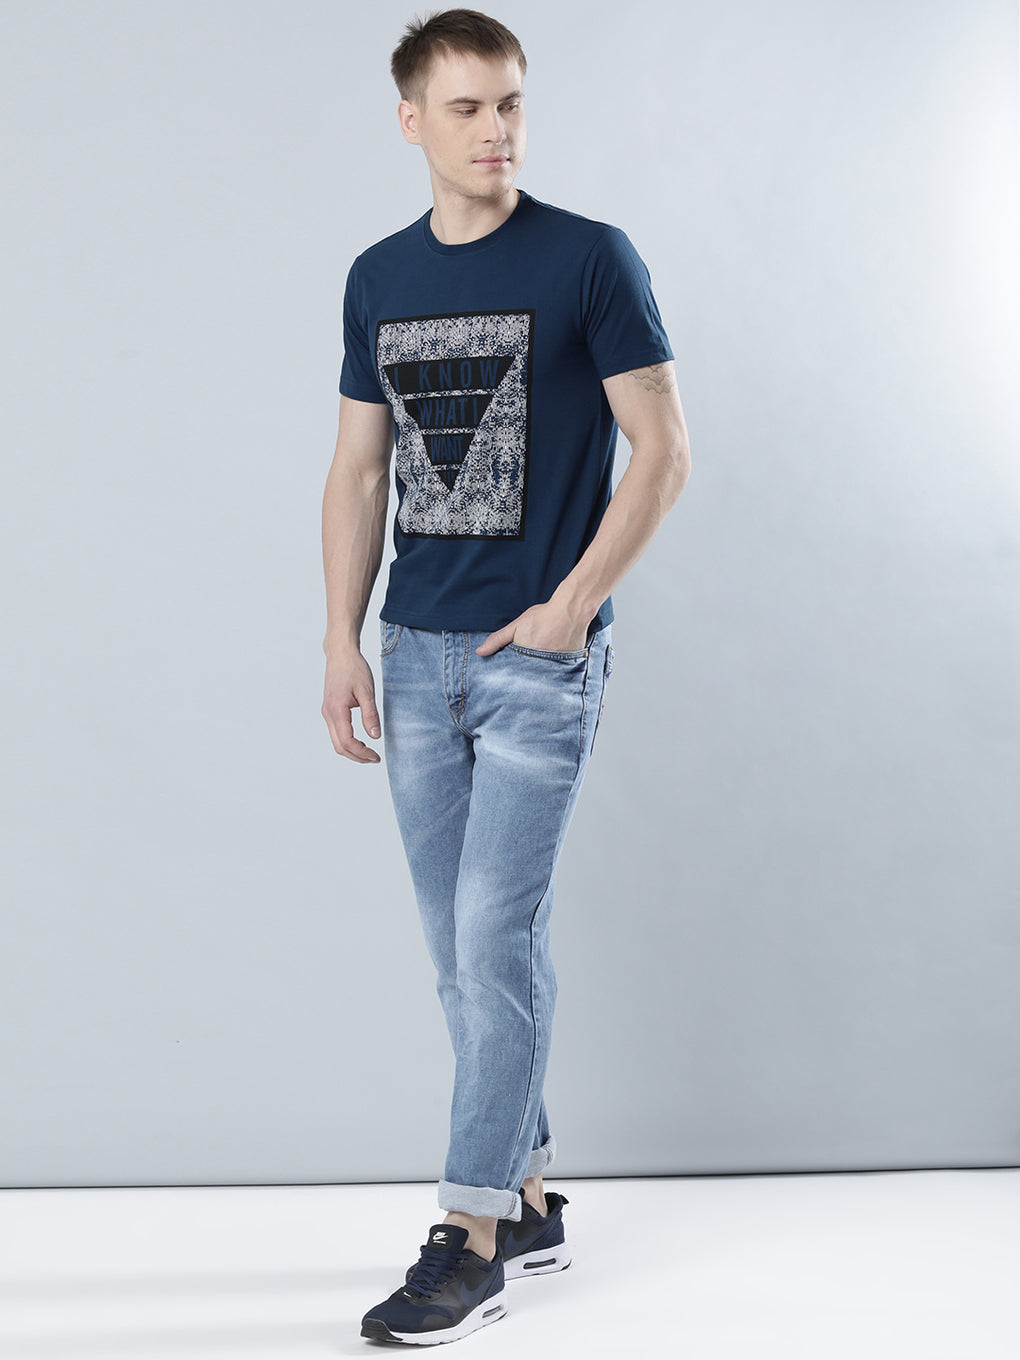 COBB Blue Round Neck T-Shirt